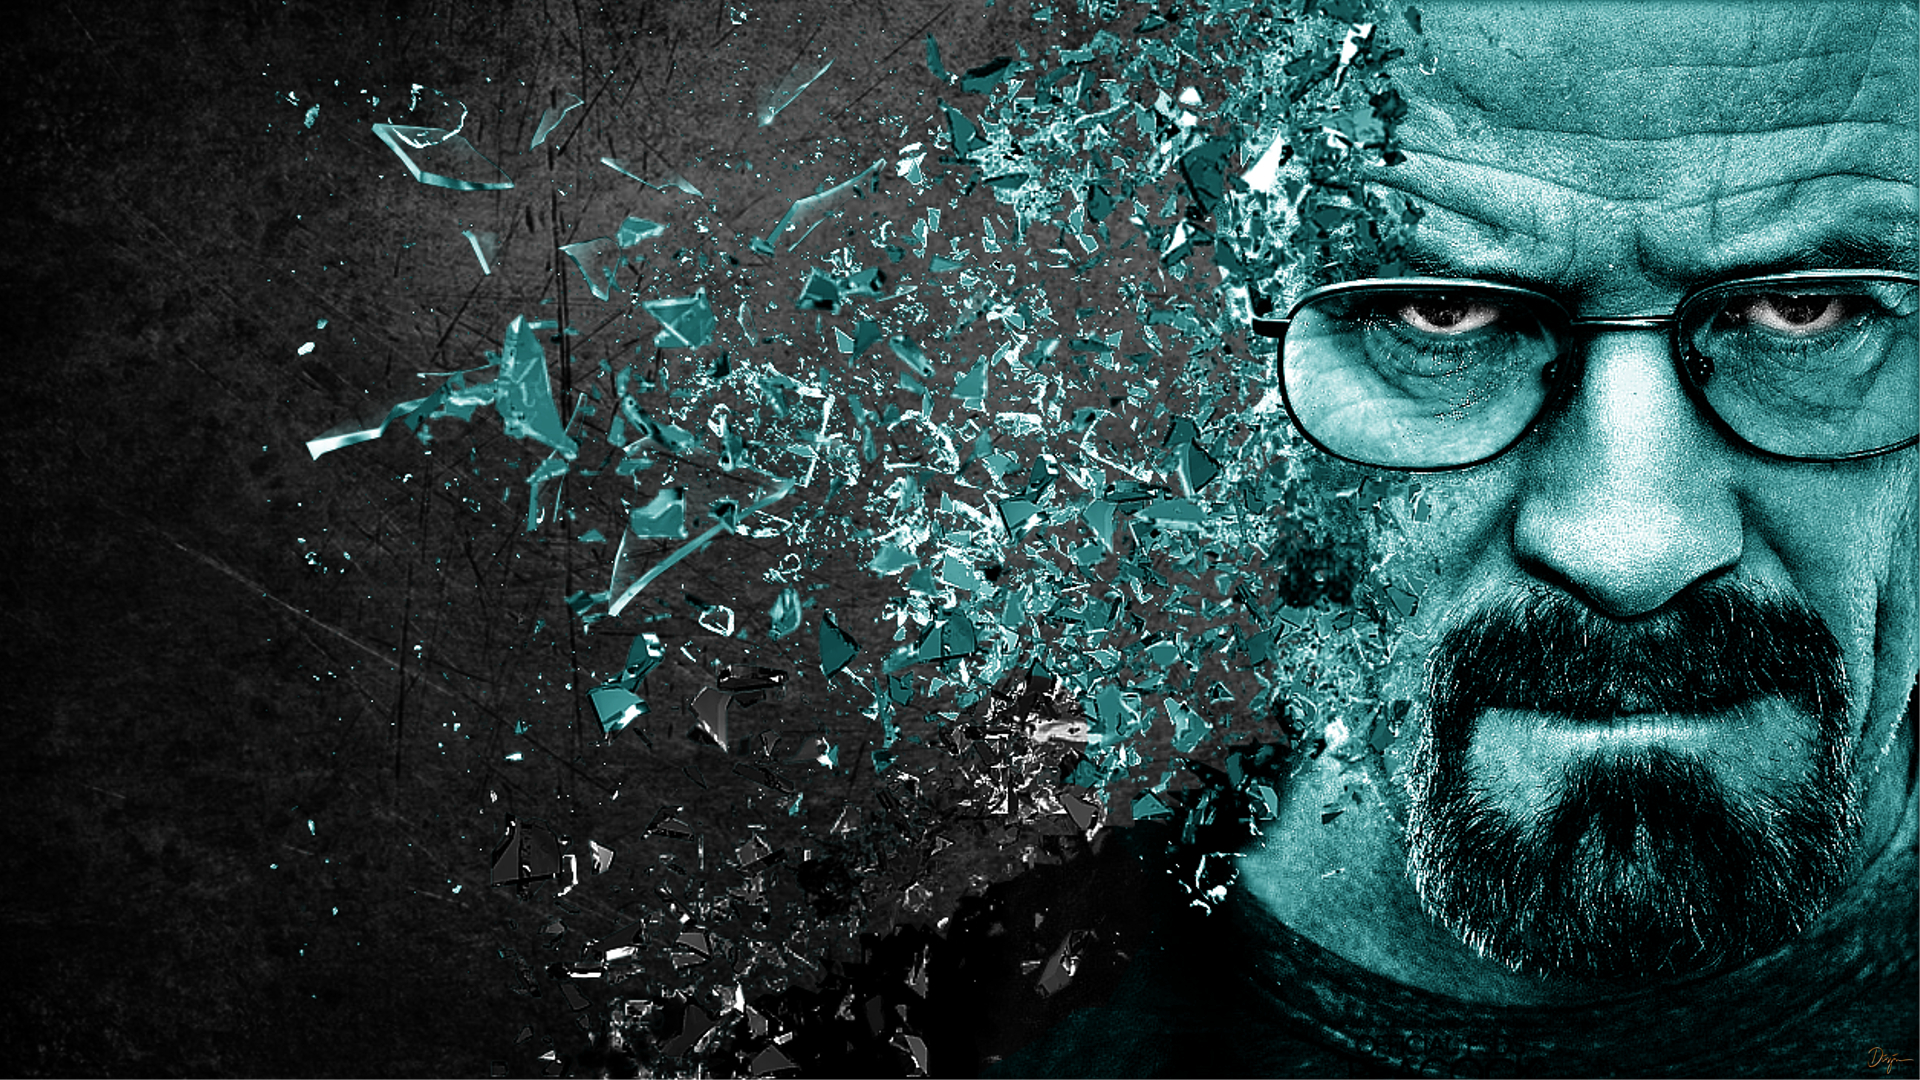 breaking-bad-wallz-by-sahinduezguen-dokz-wallpaper-wp3603701